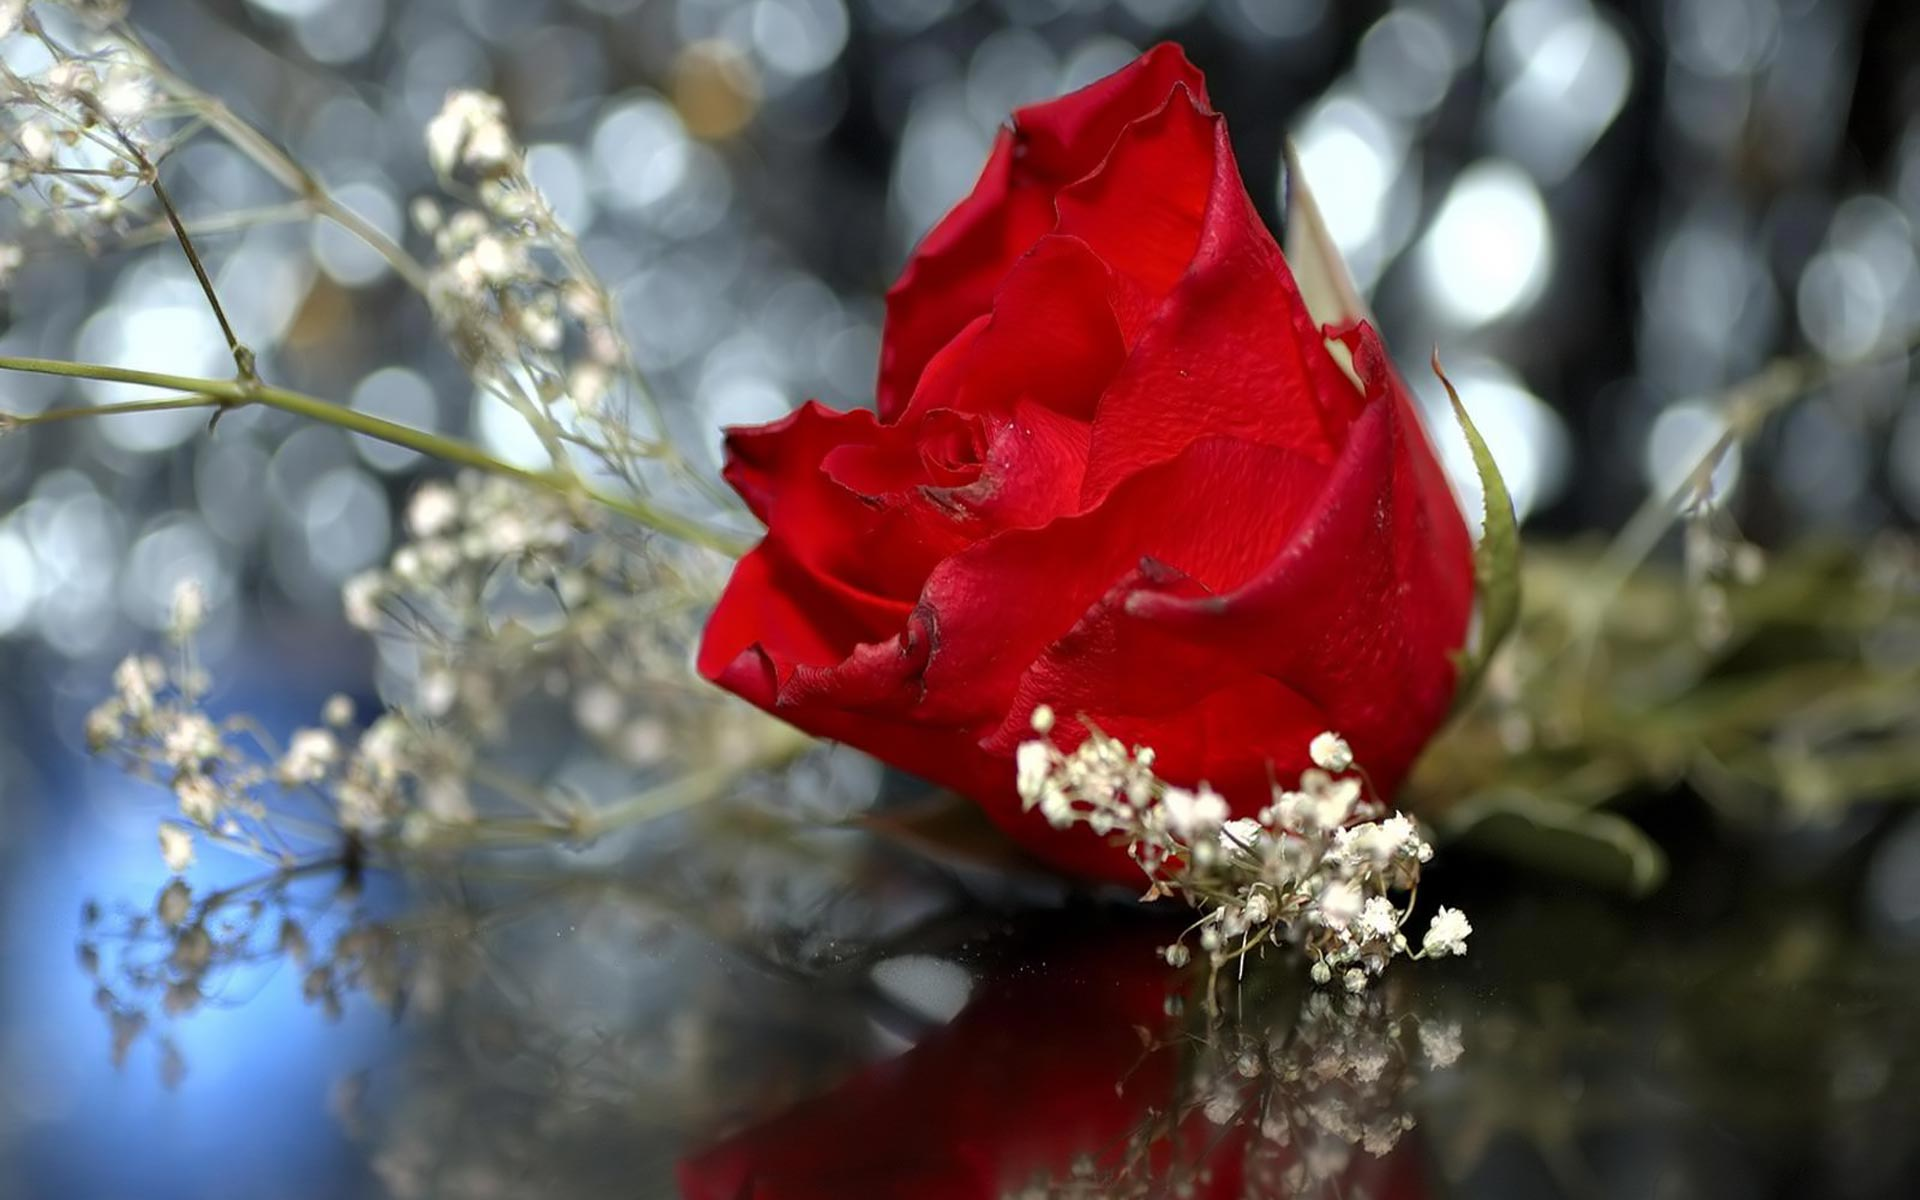 Wedding Red Rose Flowers HD Wallpaper Nature Wallpapers